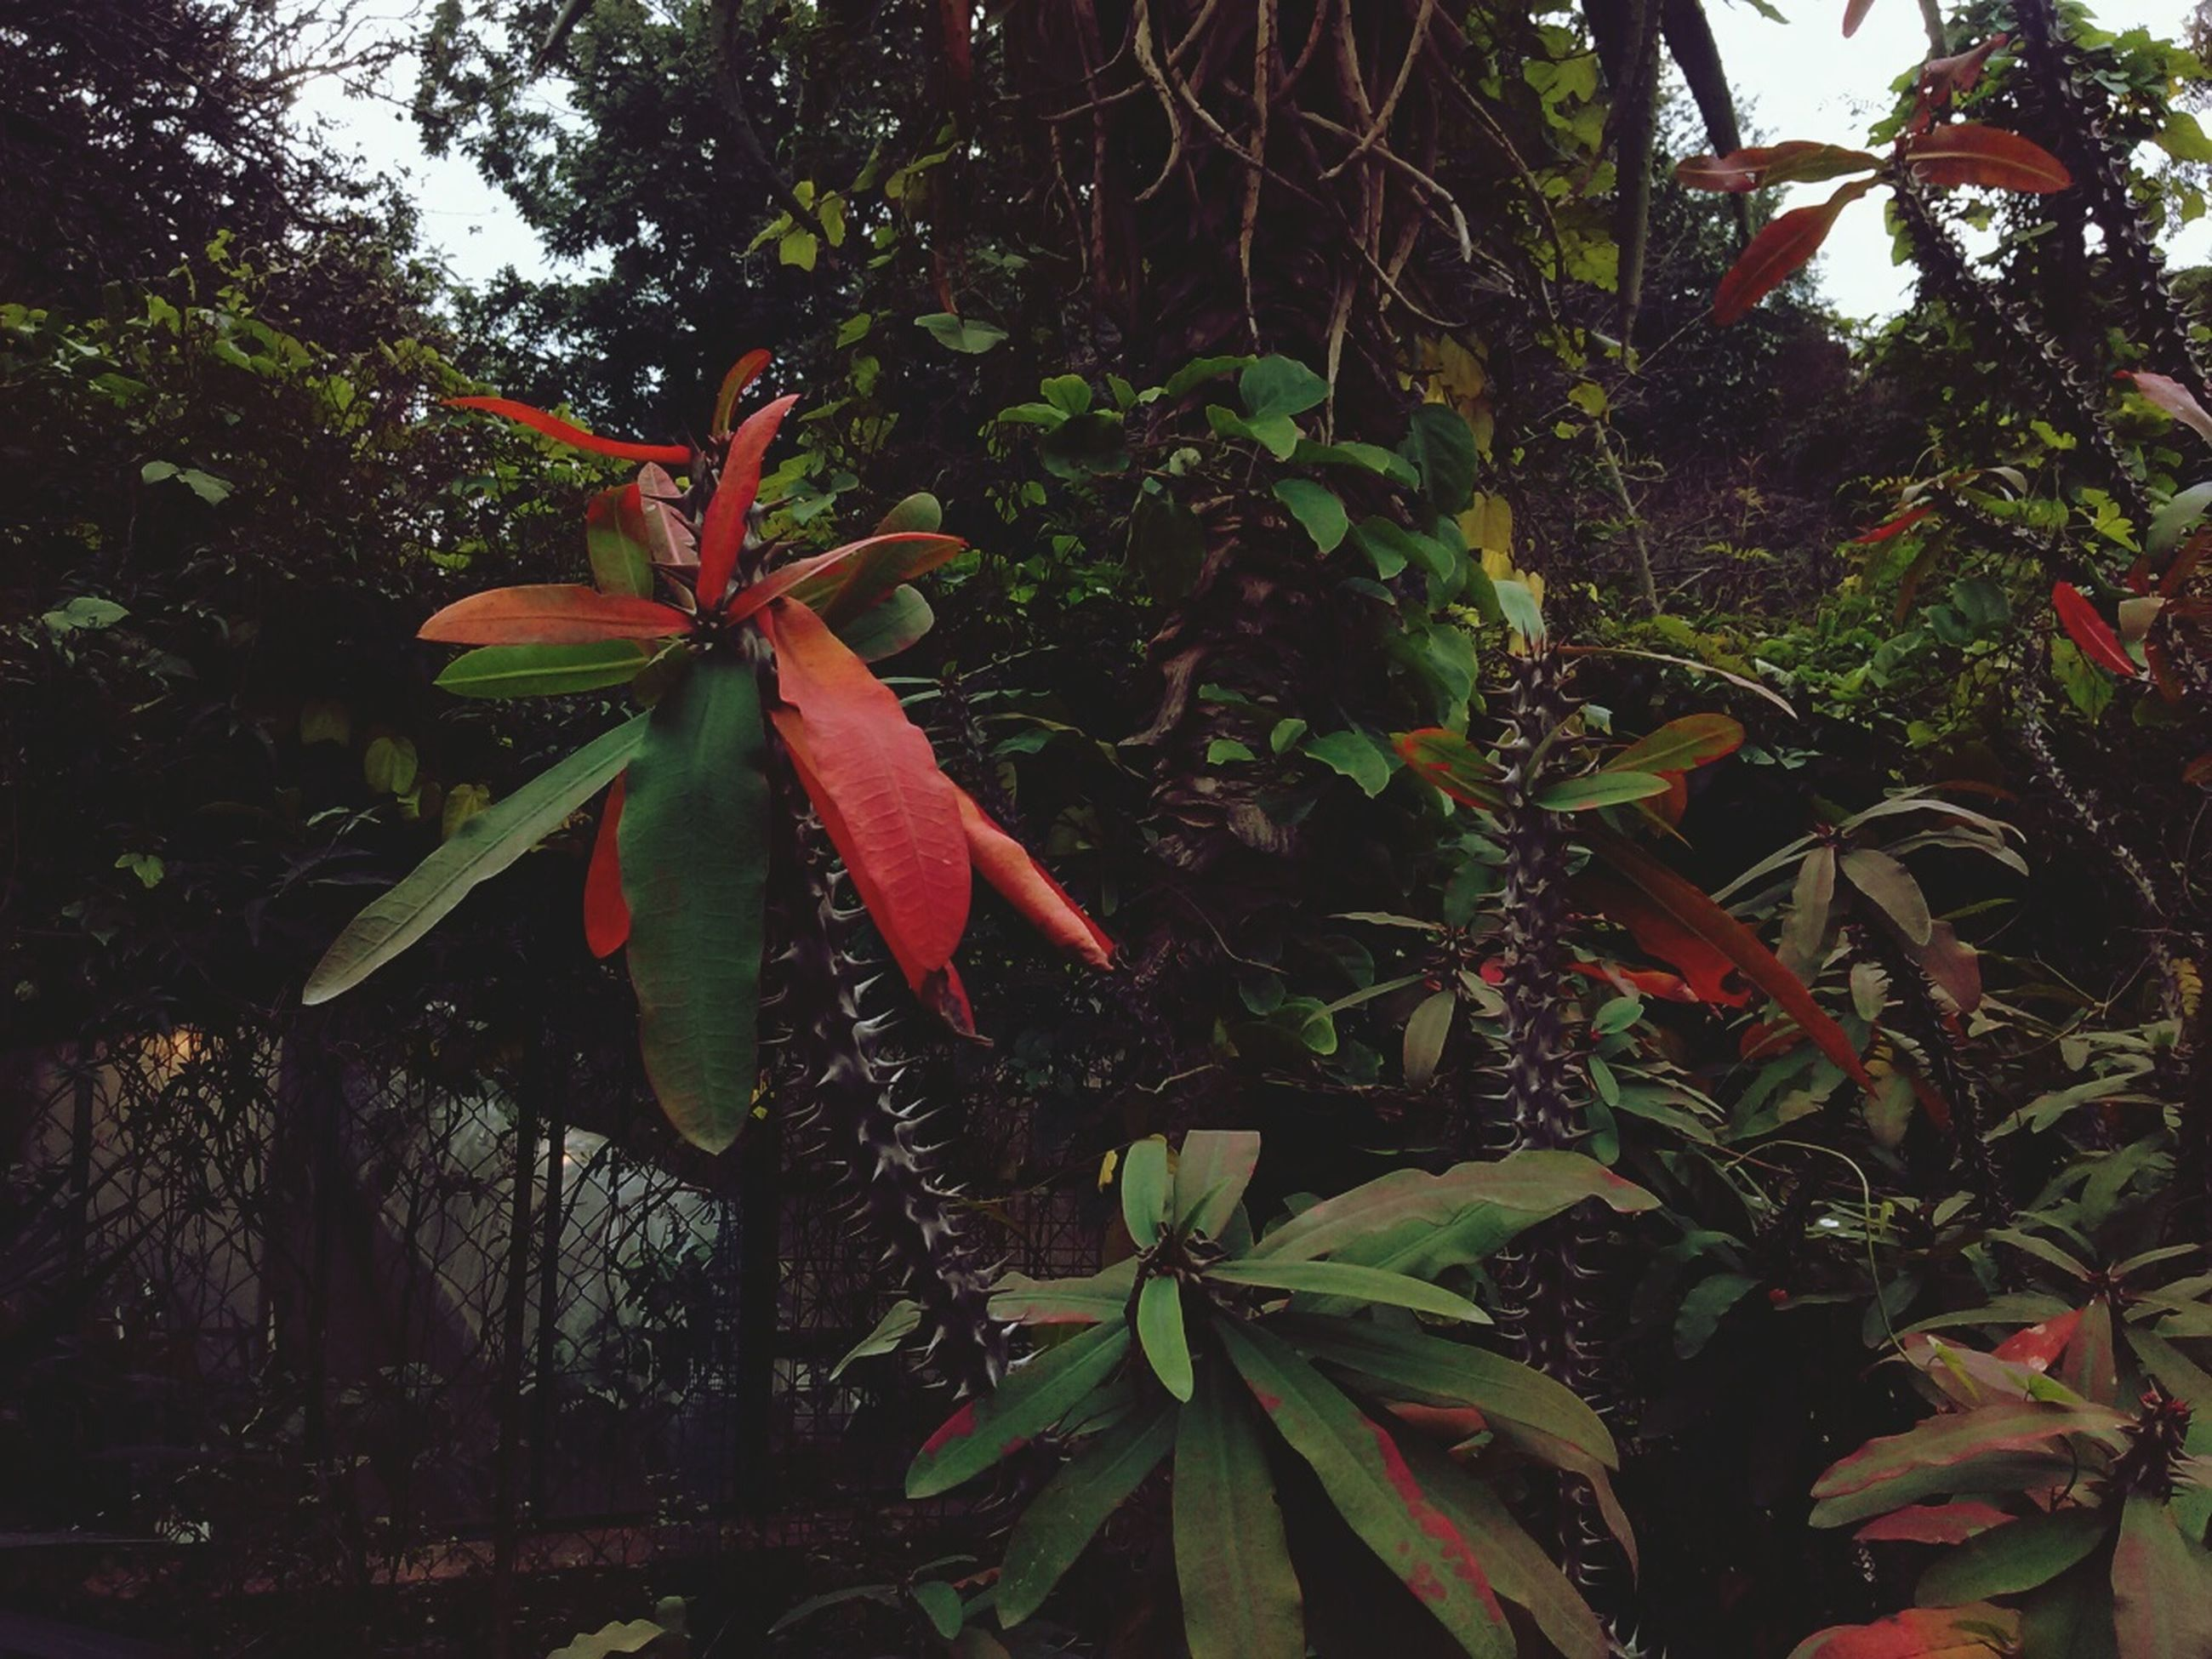 growth, plant, leaf, tree, green color, nature, red, close-up, day, outdoors, beauty in nature, no people, tranquility, green, growing, focus on foreground, lush foliage, selective focus